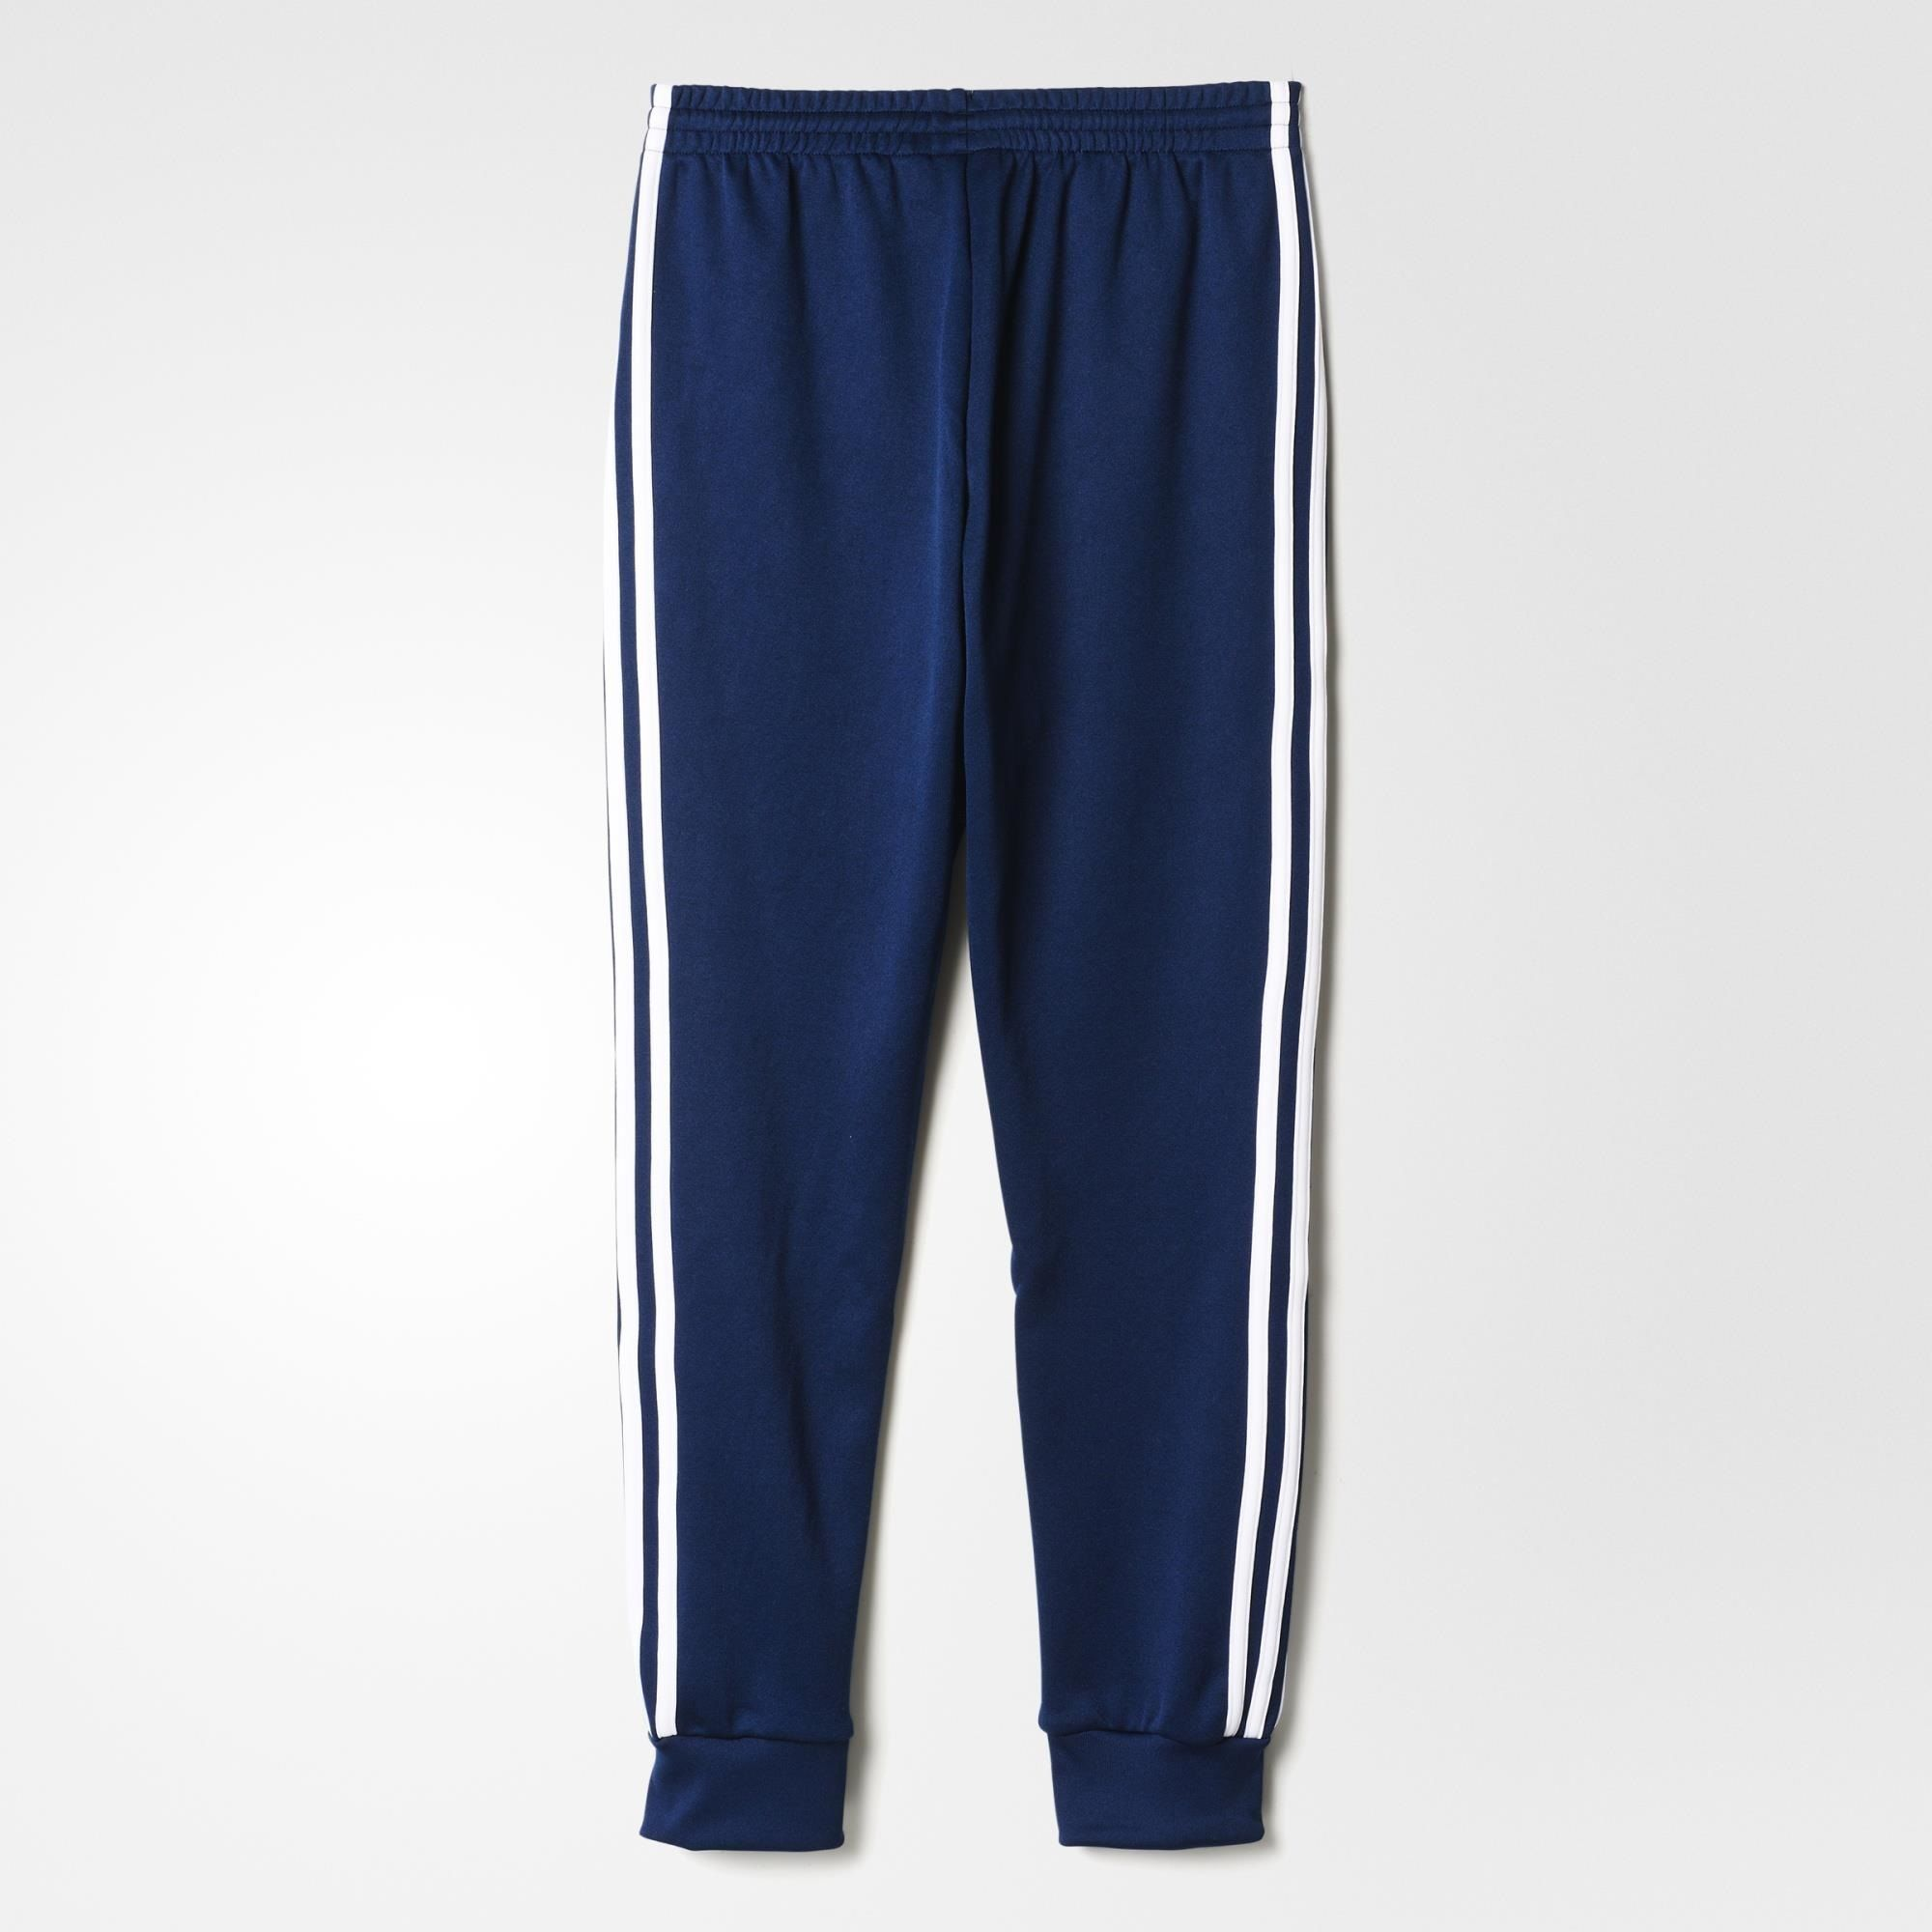 adidas superstar track pants boys adidas outlet store carlsbad ca genius